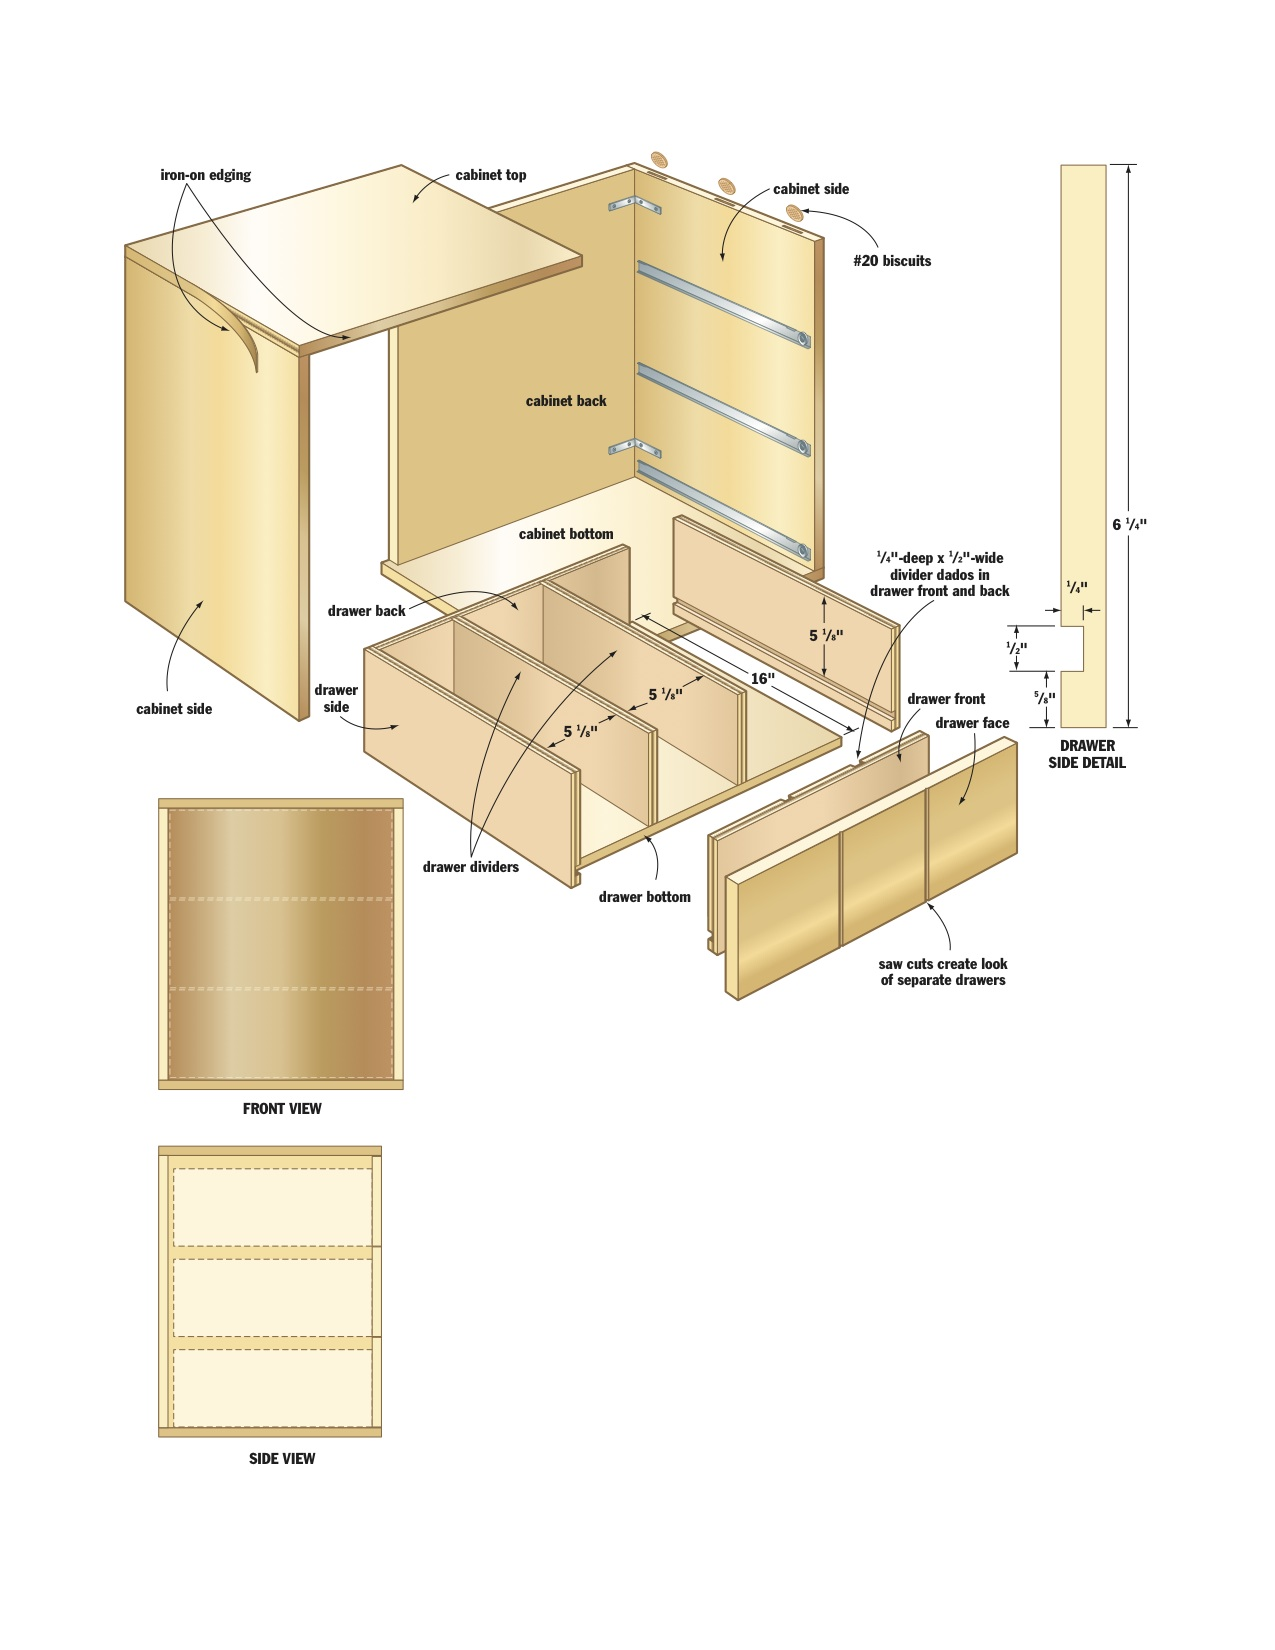 How to build plans storage cabinets plans woodworking Cabinets plans